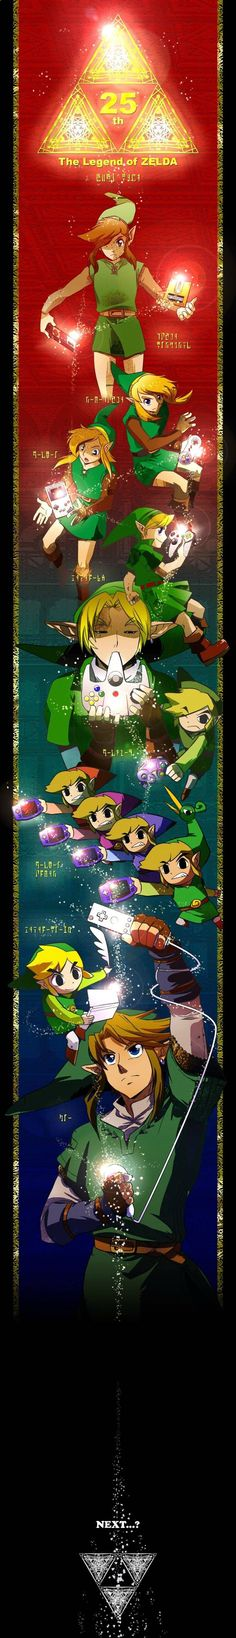 The Legend Of Zelda.